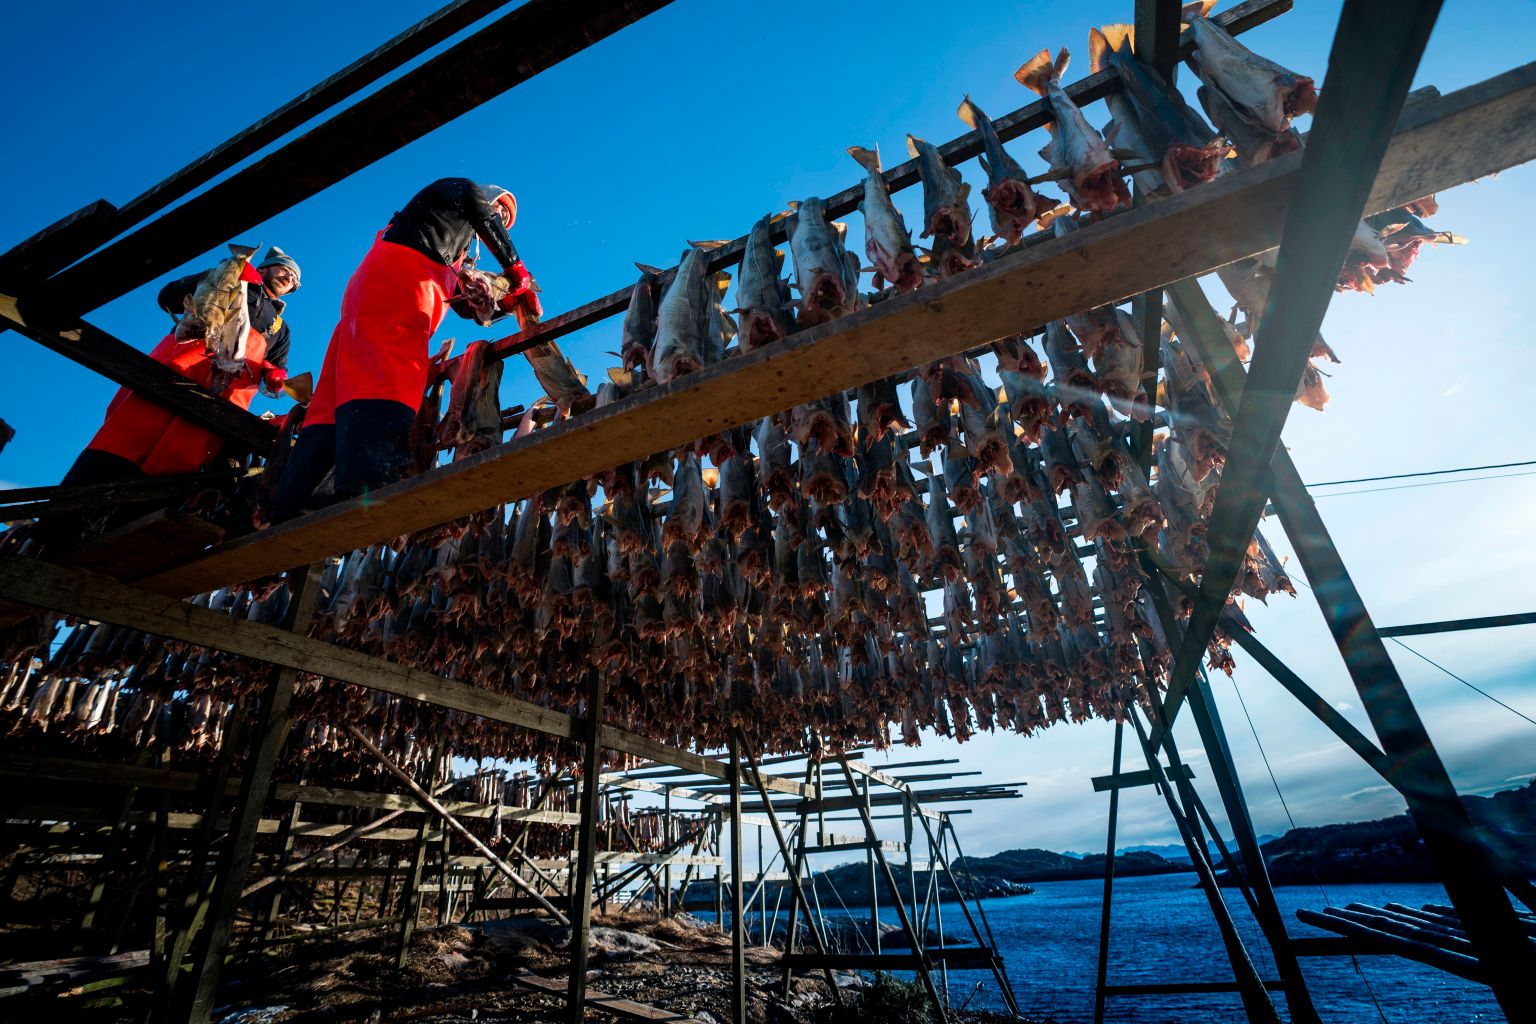 TOPSHOT - Fishing company workers hang arctic chars on wood high tables right after being fished, on March 6, 2018, in Henningsvaer, northern Norway, within Arctic Circle. Those fishes stay 6 months drying up on the air. / AFP PHOTO / Olivier MORIN        (Photo credit should read OLIVIER MORIN/AFP/Getty Images)